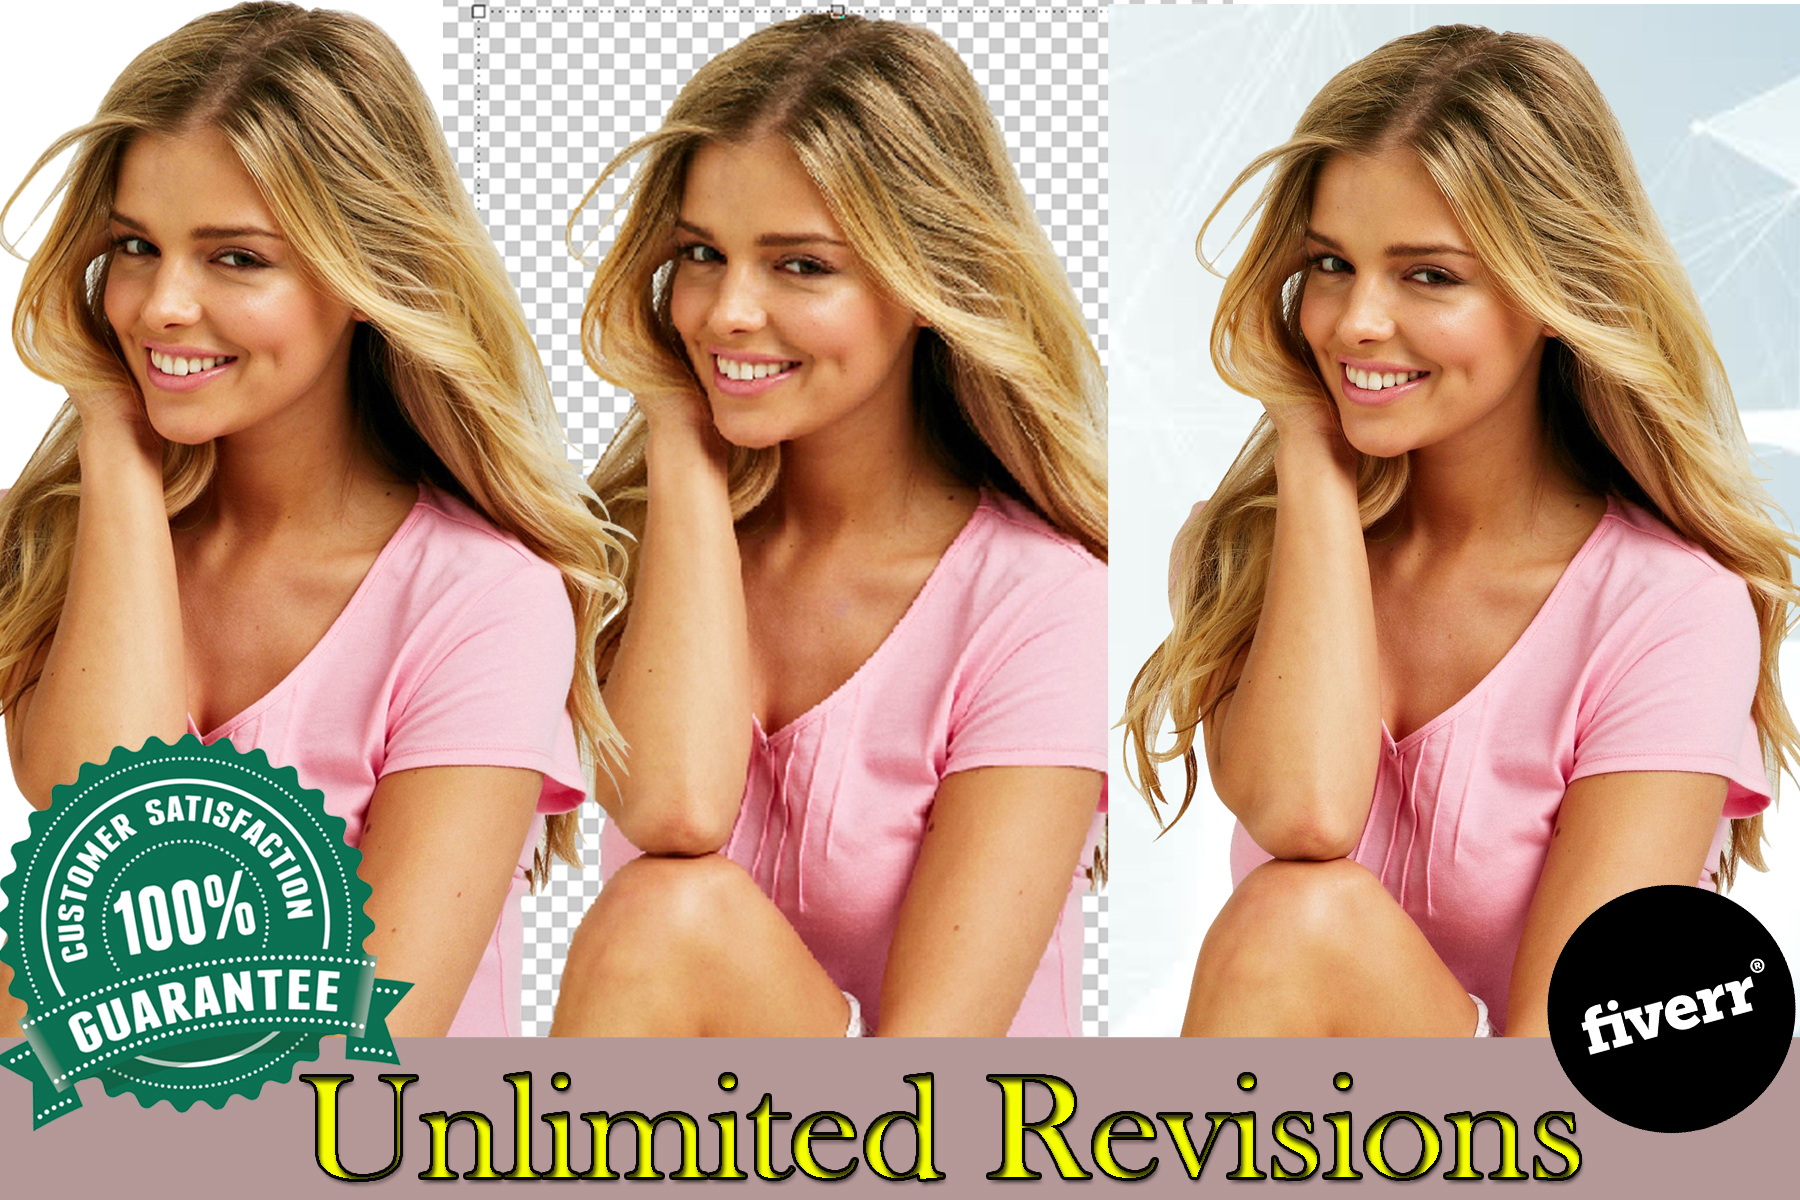 Remove Background or Cutout any 10 Images People/Product/Car/Animal/Others